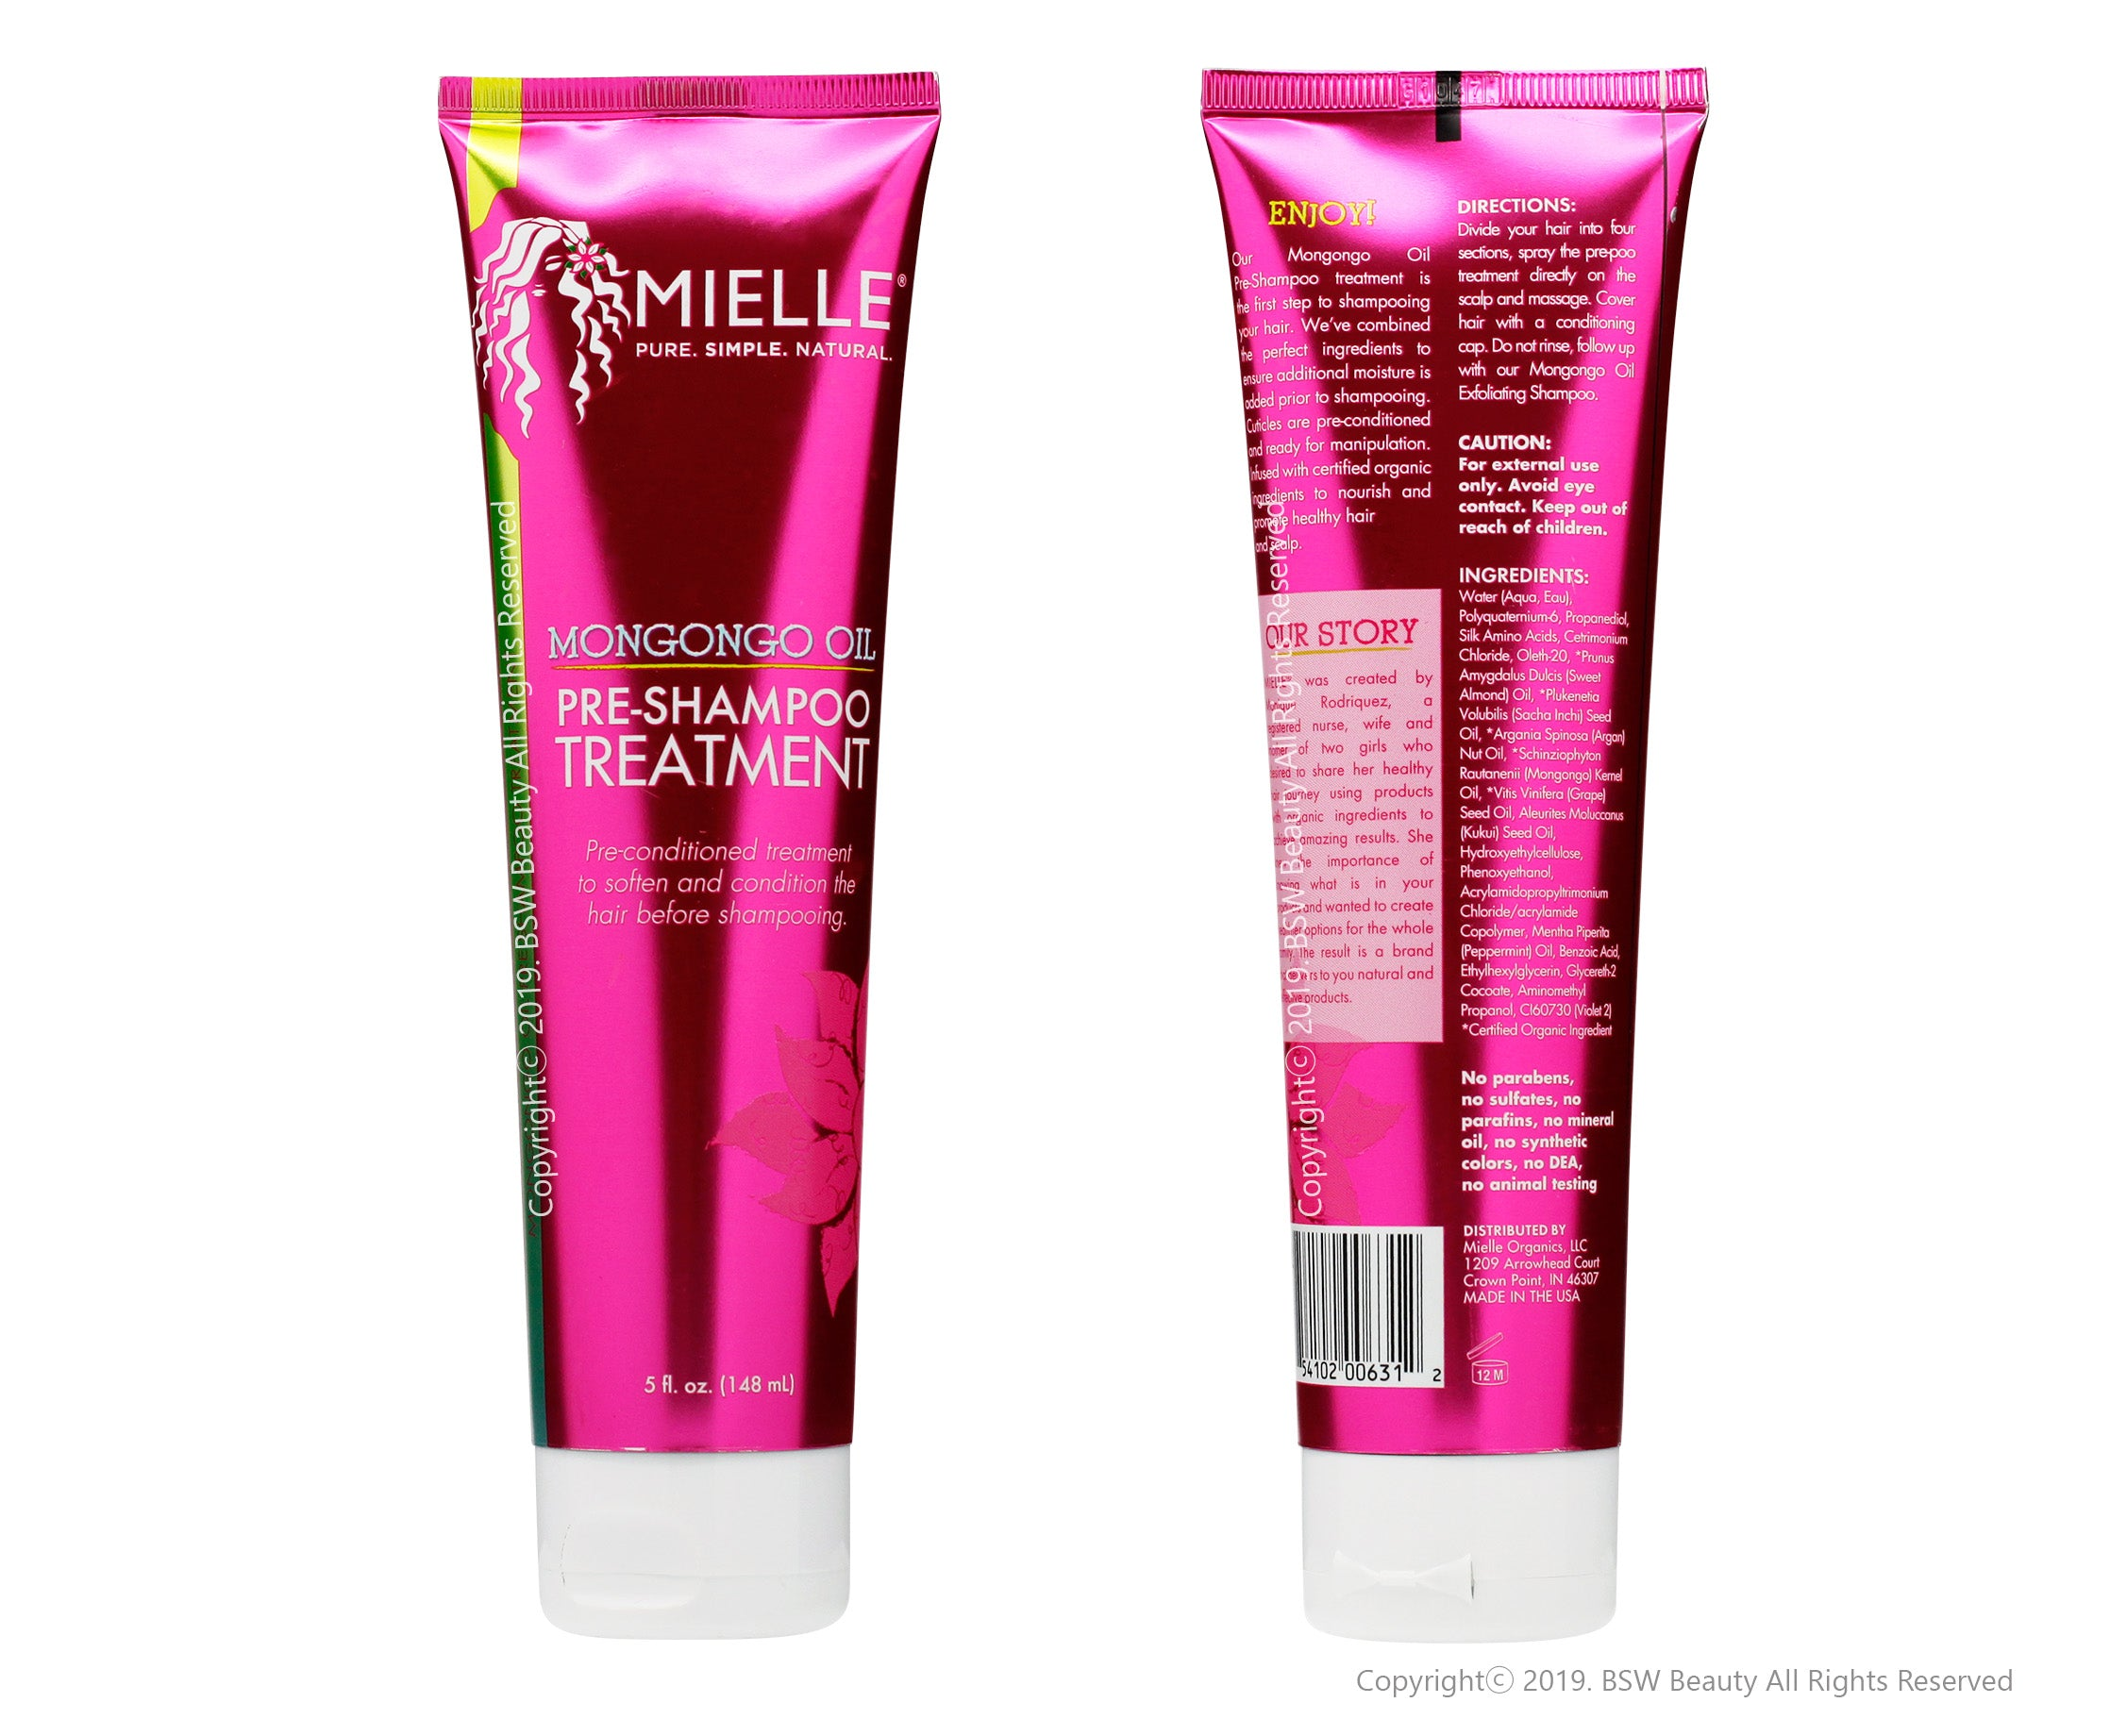 MIELLE ORGANICS MONGONGO OIL PRE SHAMPOO TREATMENT 5oz